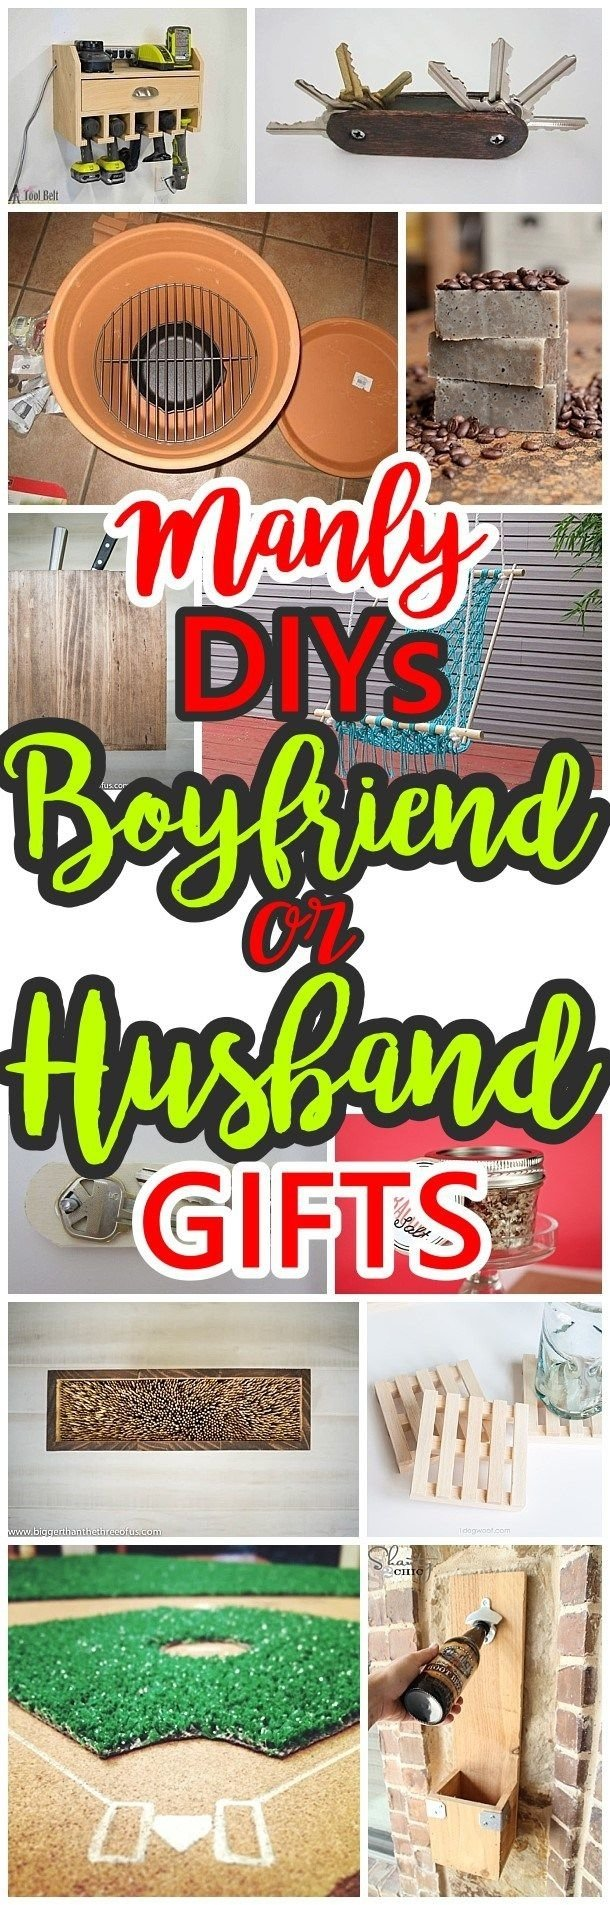 10 Attractive Christmas Gift Ideas For Brother In Law Birthday Gifts Home